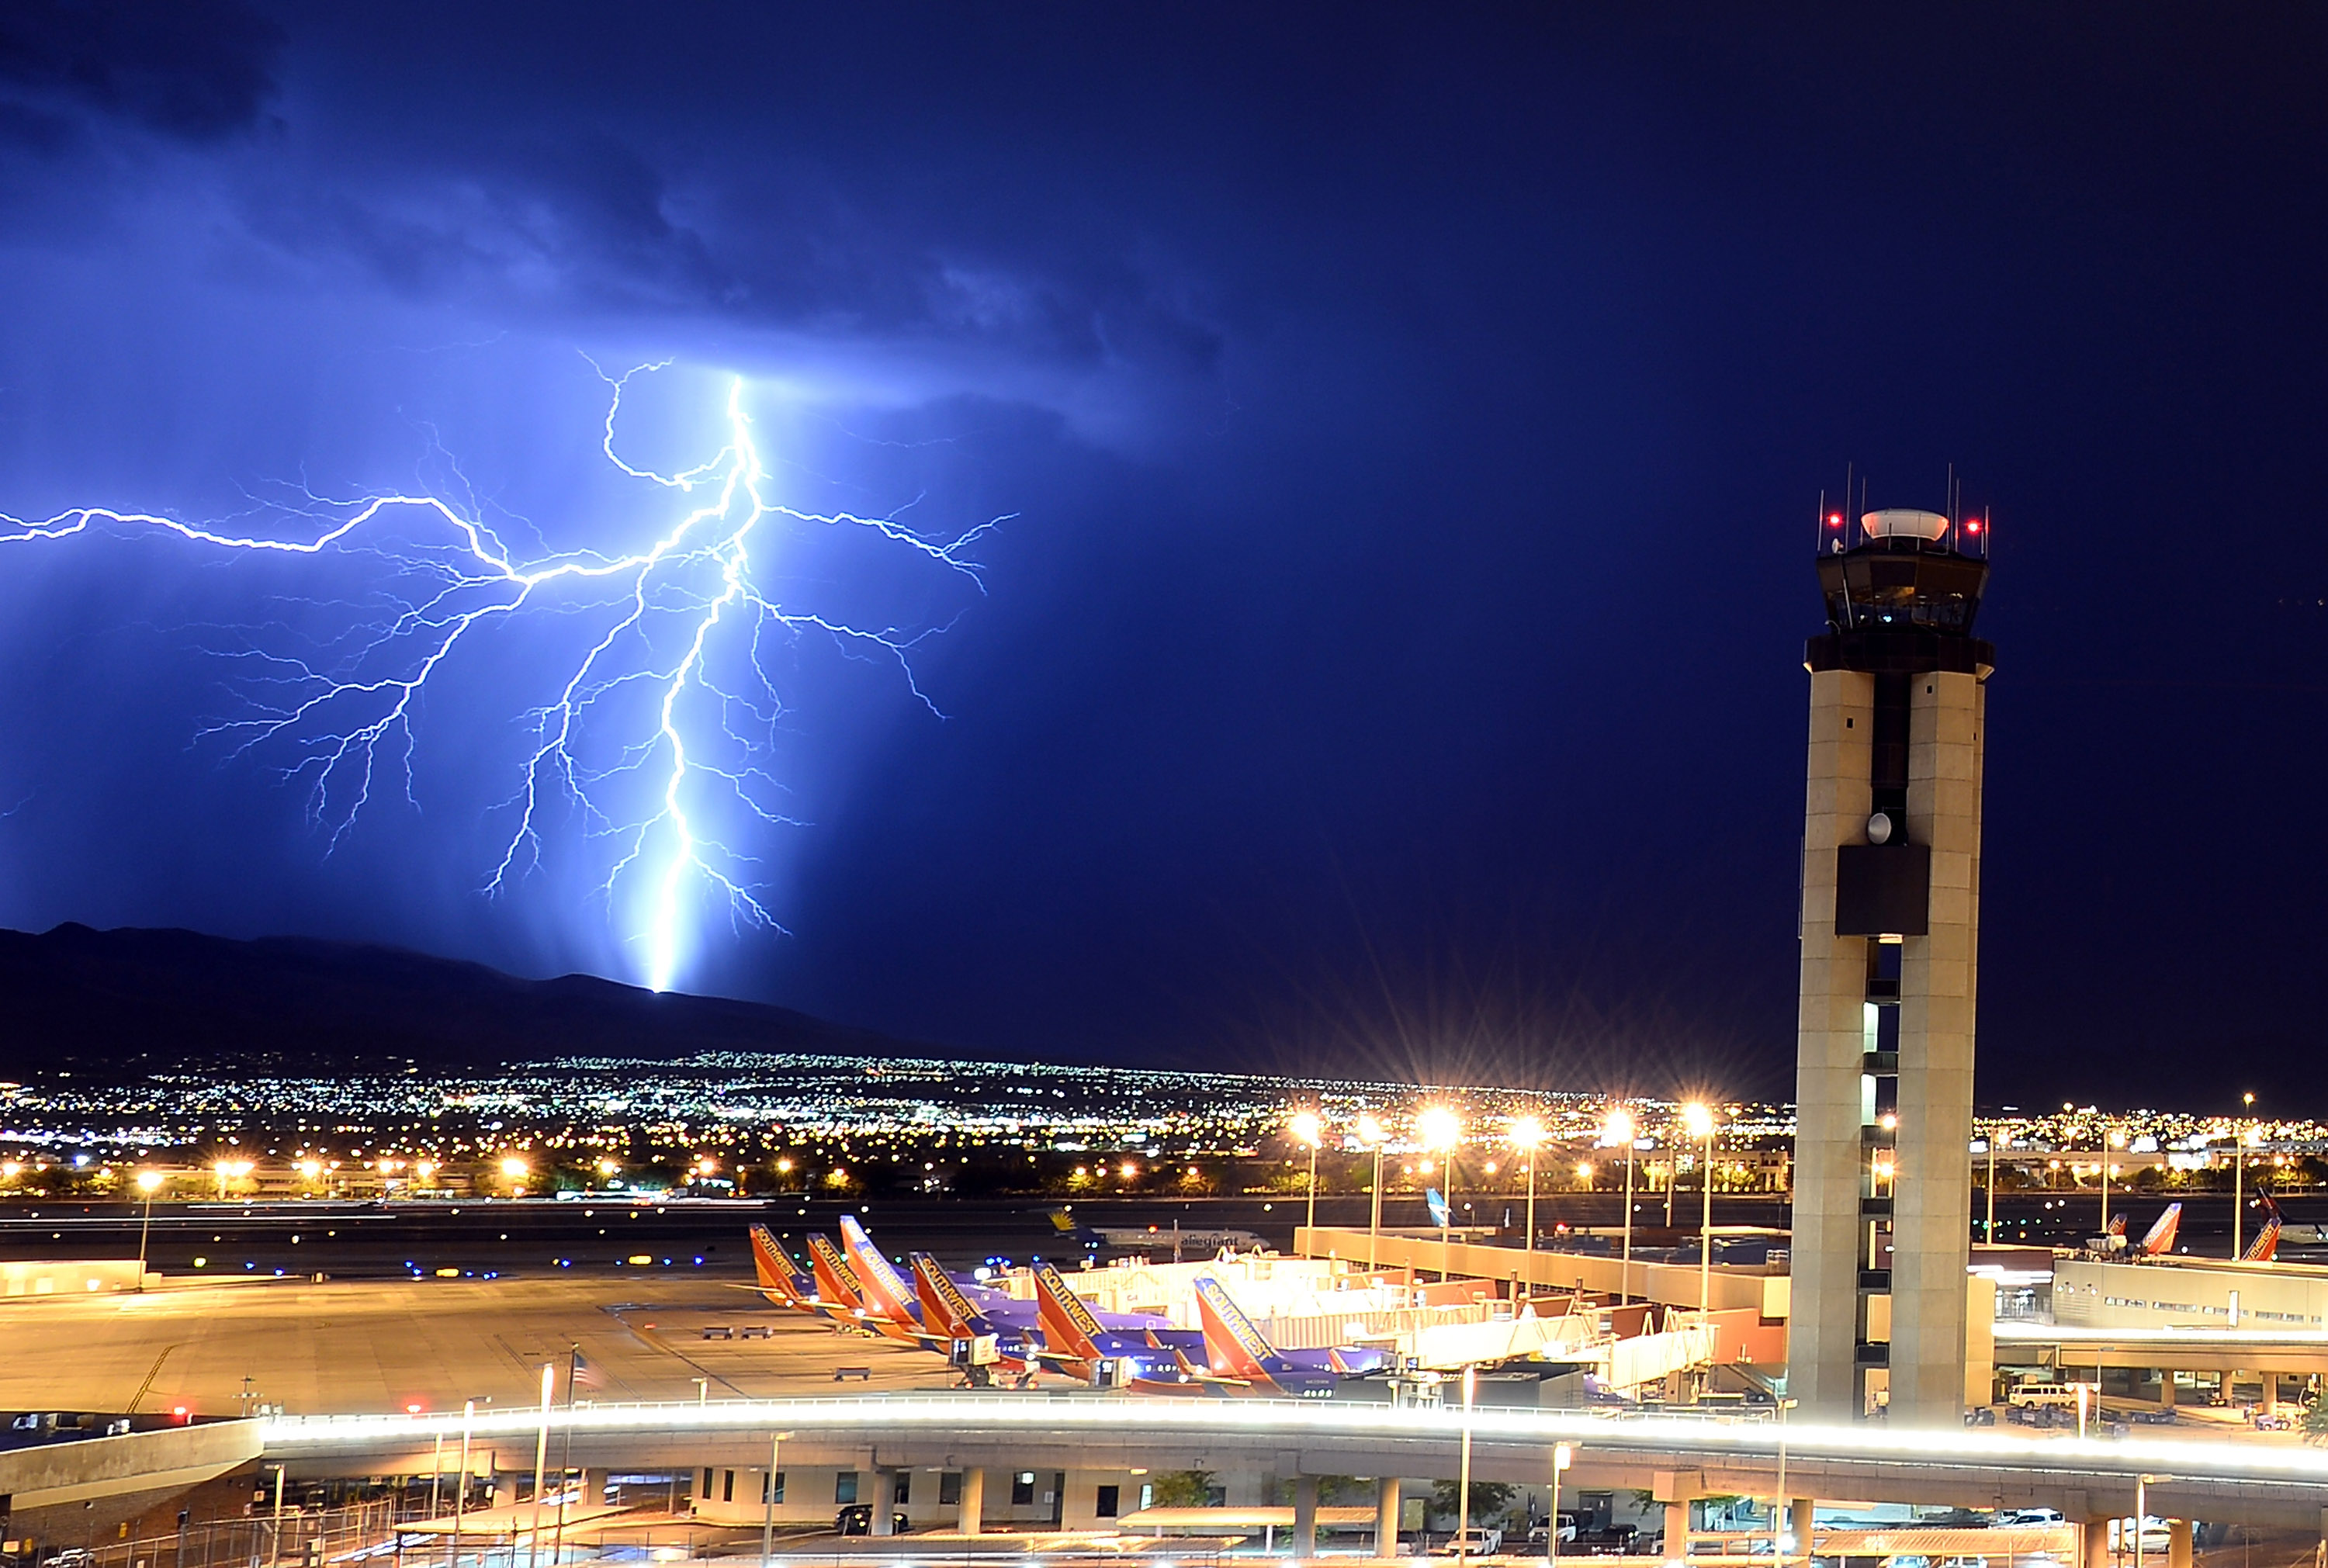 Slide 7 of 20: LAS VEGAS, NV - AUGUST 18: Lightning flashes behind an air traffic control tower at McCarran International Airport on August 18, 2013 in Las Vegas, Nevada. Thunderstorms swept across the area on Sunday prompting the National Weather Service to issue multiple severe thunderstorm and flash flood warnings. (Photo by Ethan Miller/Getty Images)